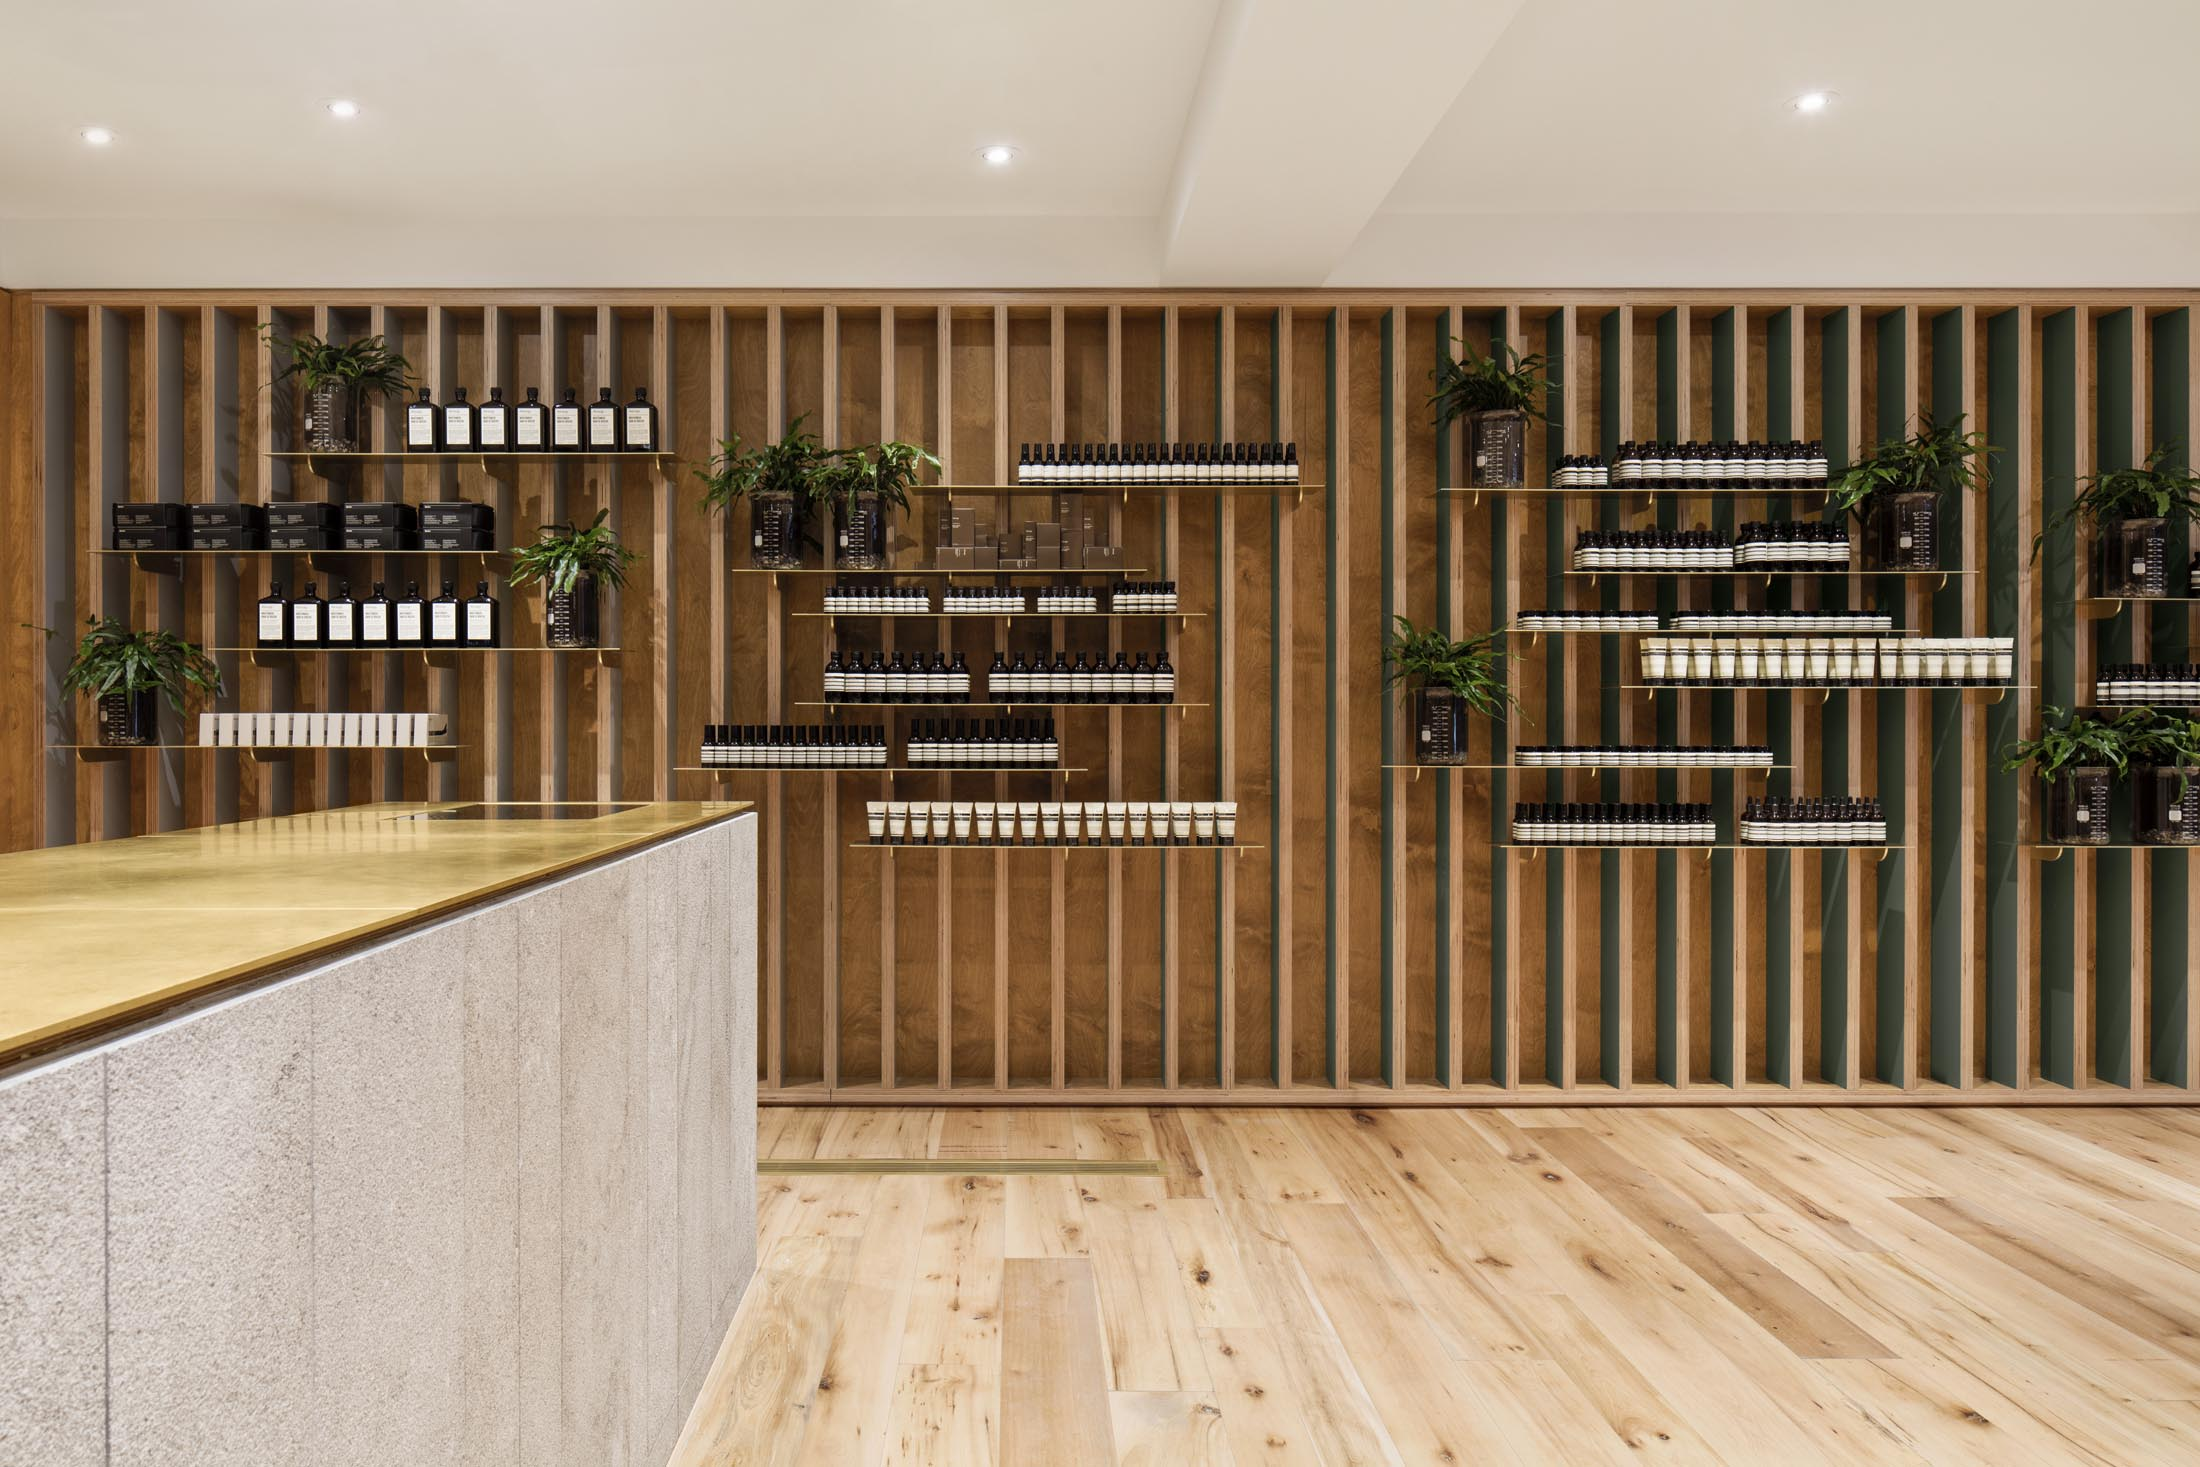 Aesop Mile End in Montreal by  N  ature Humaine    Credit: Adrien Williams